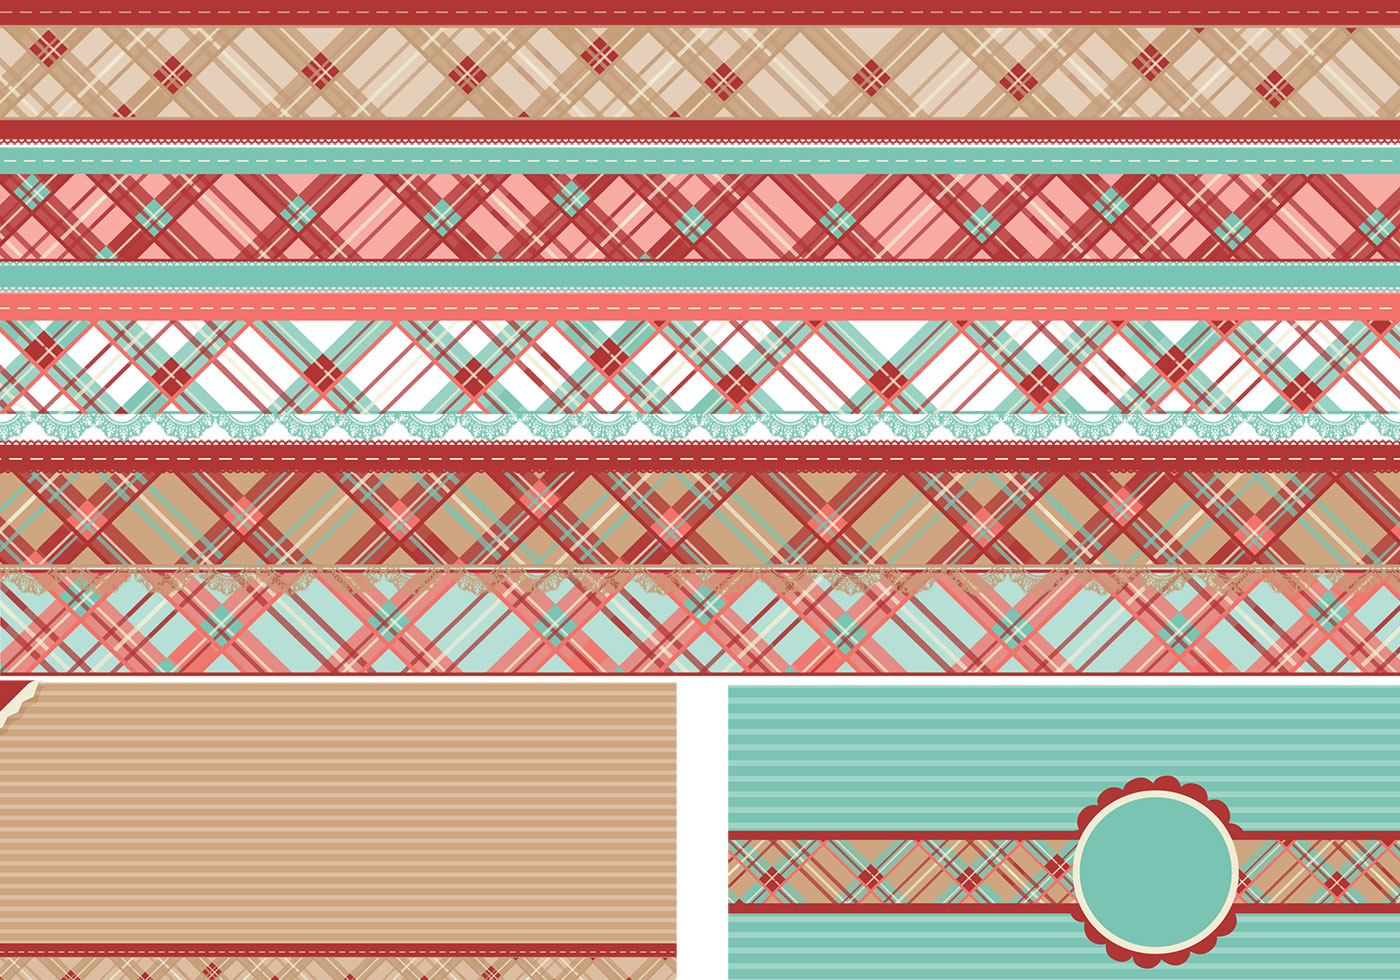 Plaid Border Brushes And Backgrounds Pack Free Photoshop